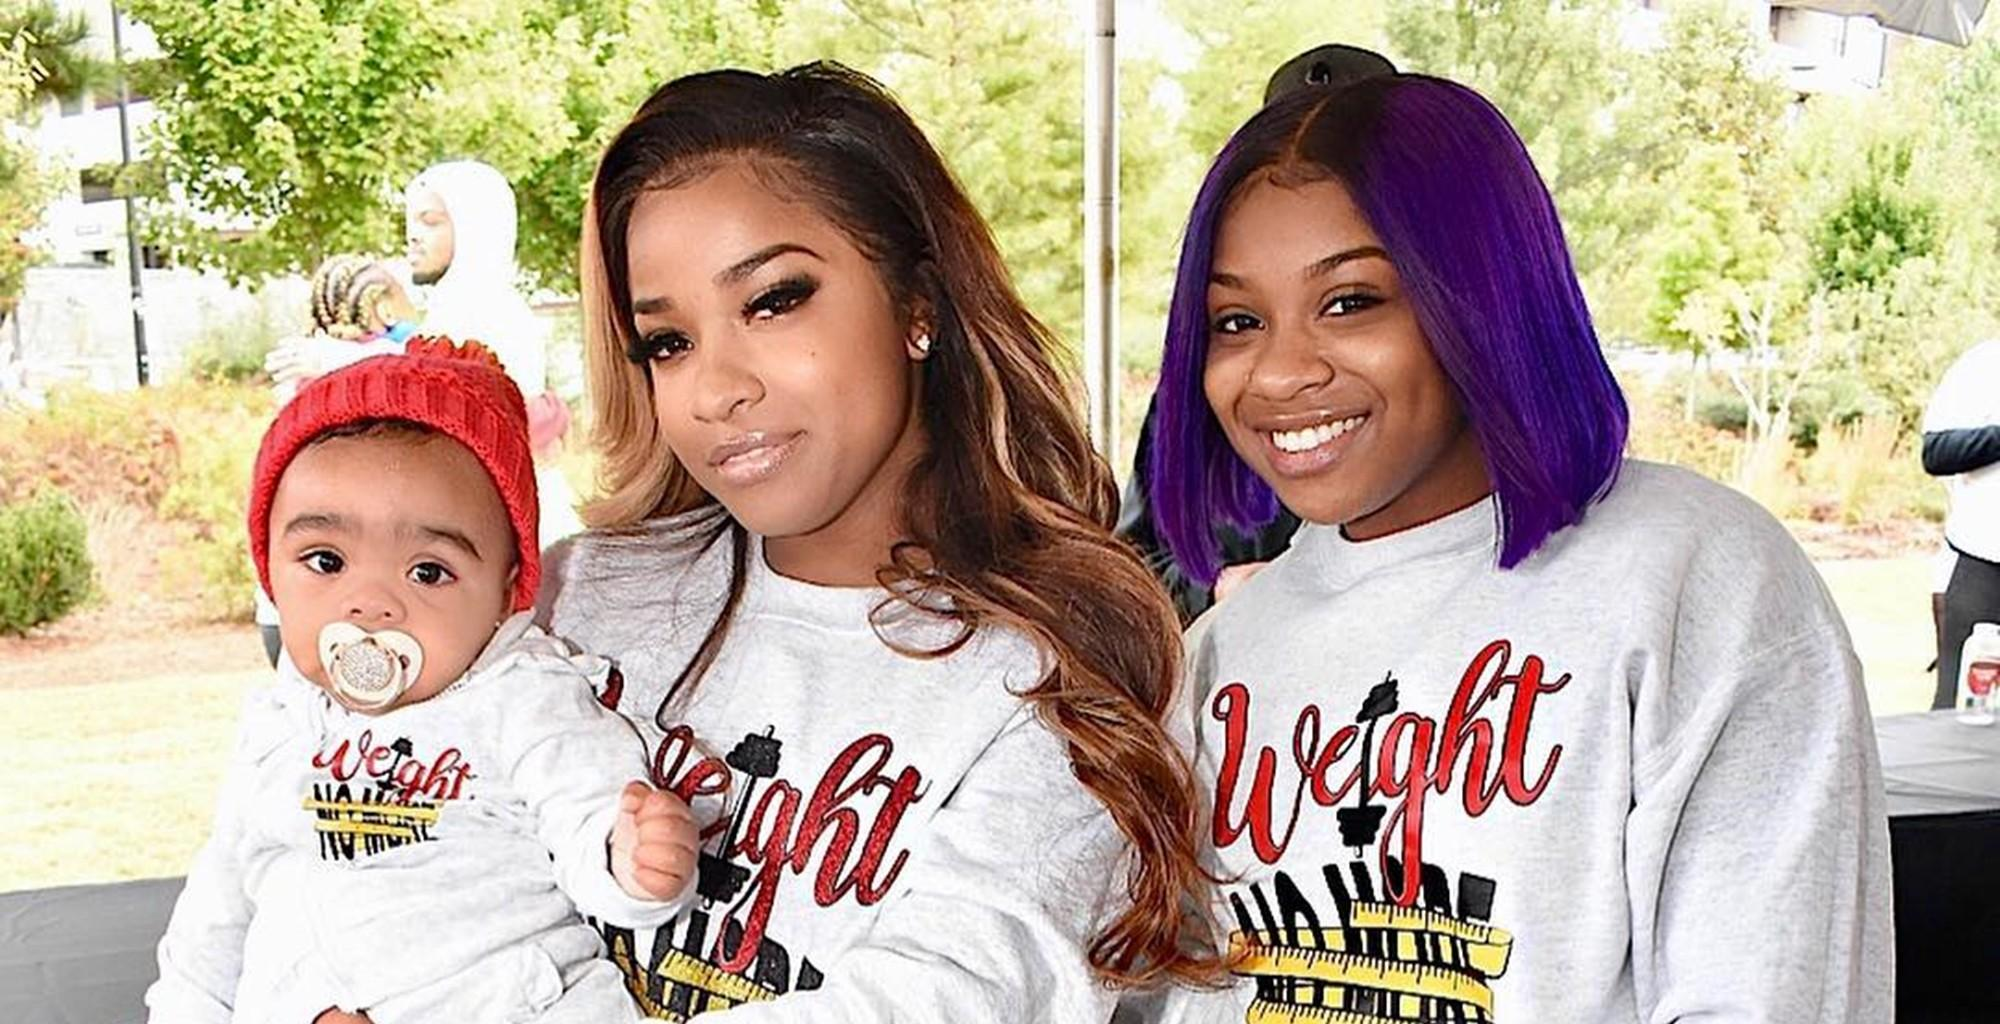 Toya Wright Slams All Haters Of Both Her Daughters - Check Out Her Fierce Message: 'I Will Not Tolerate Any Disrespect'